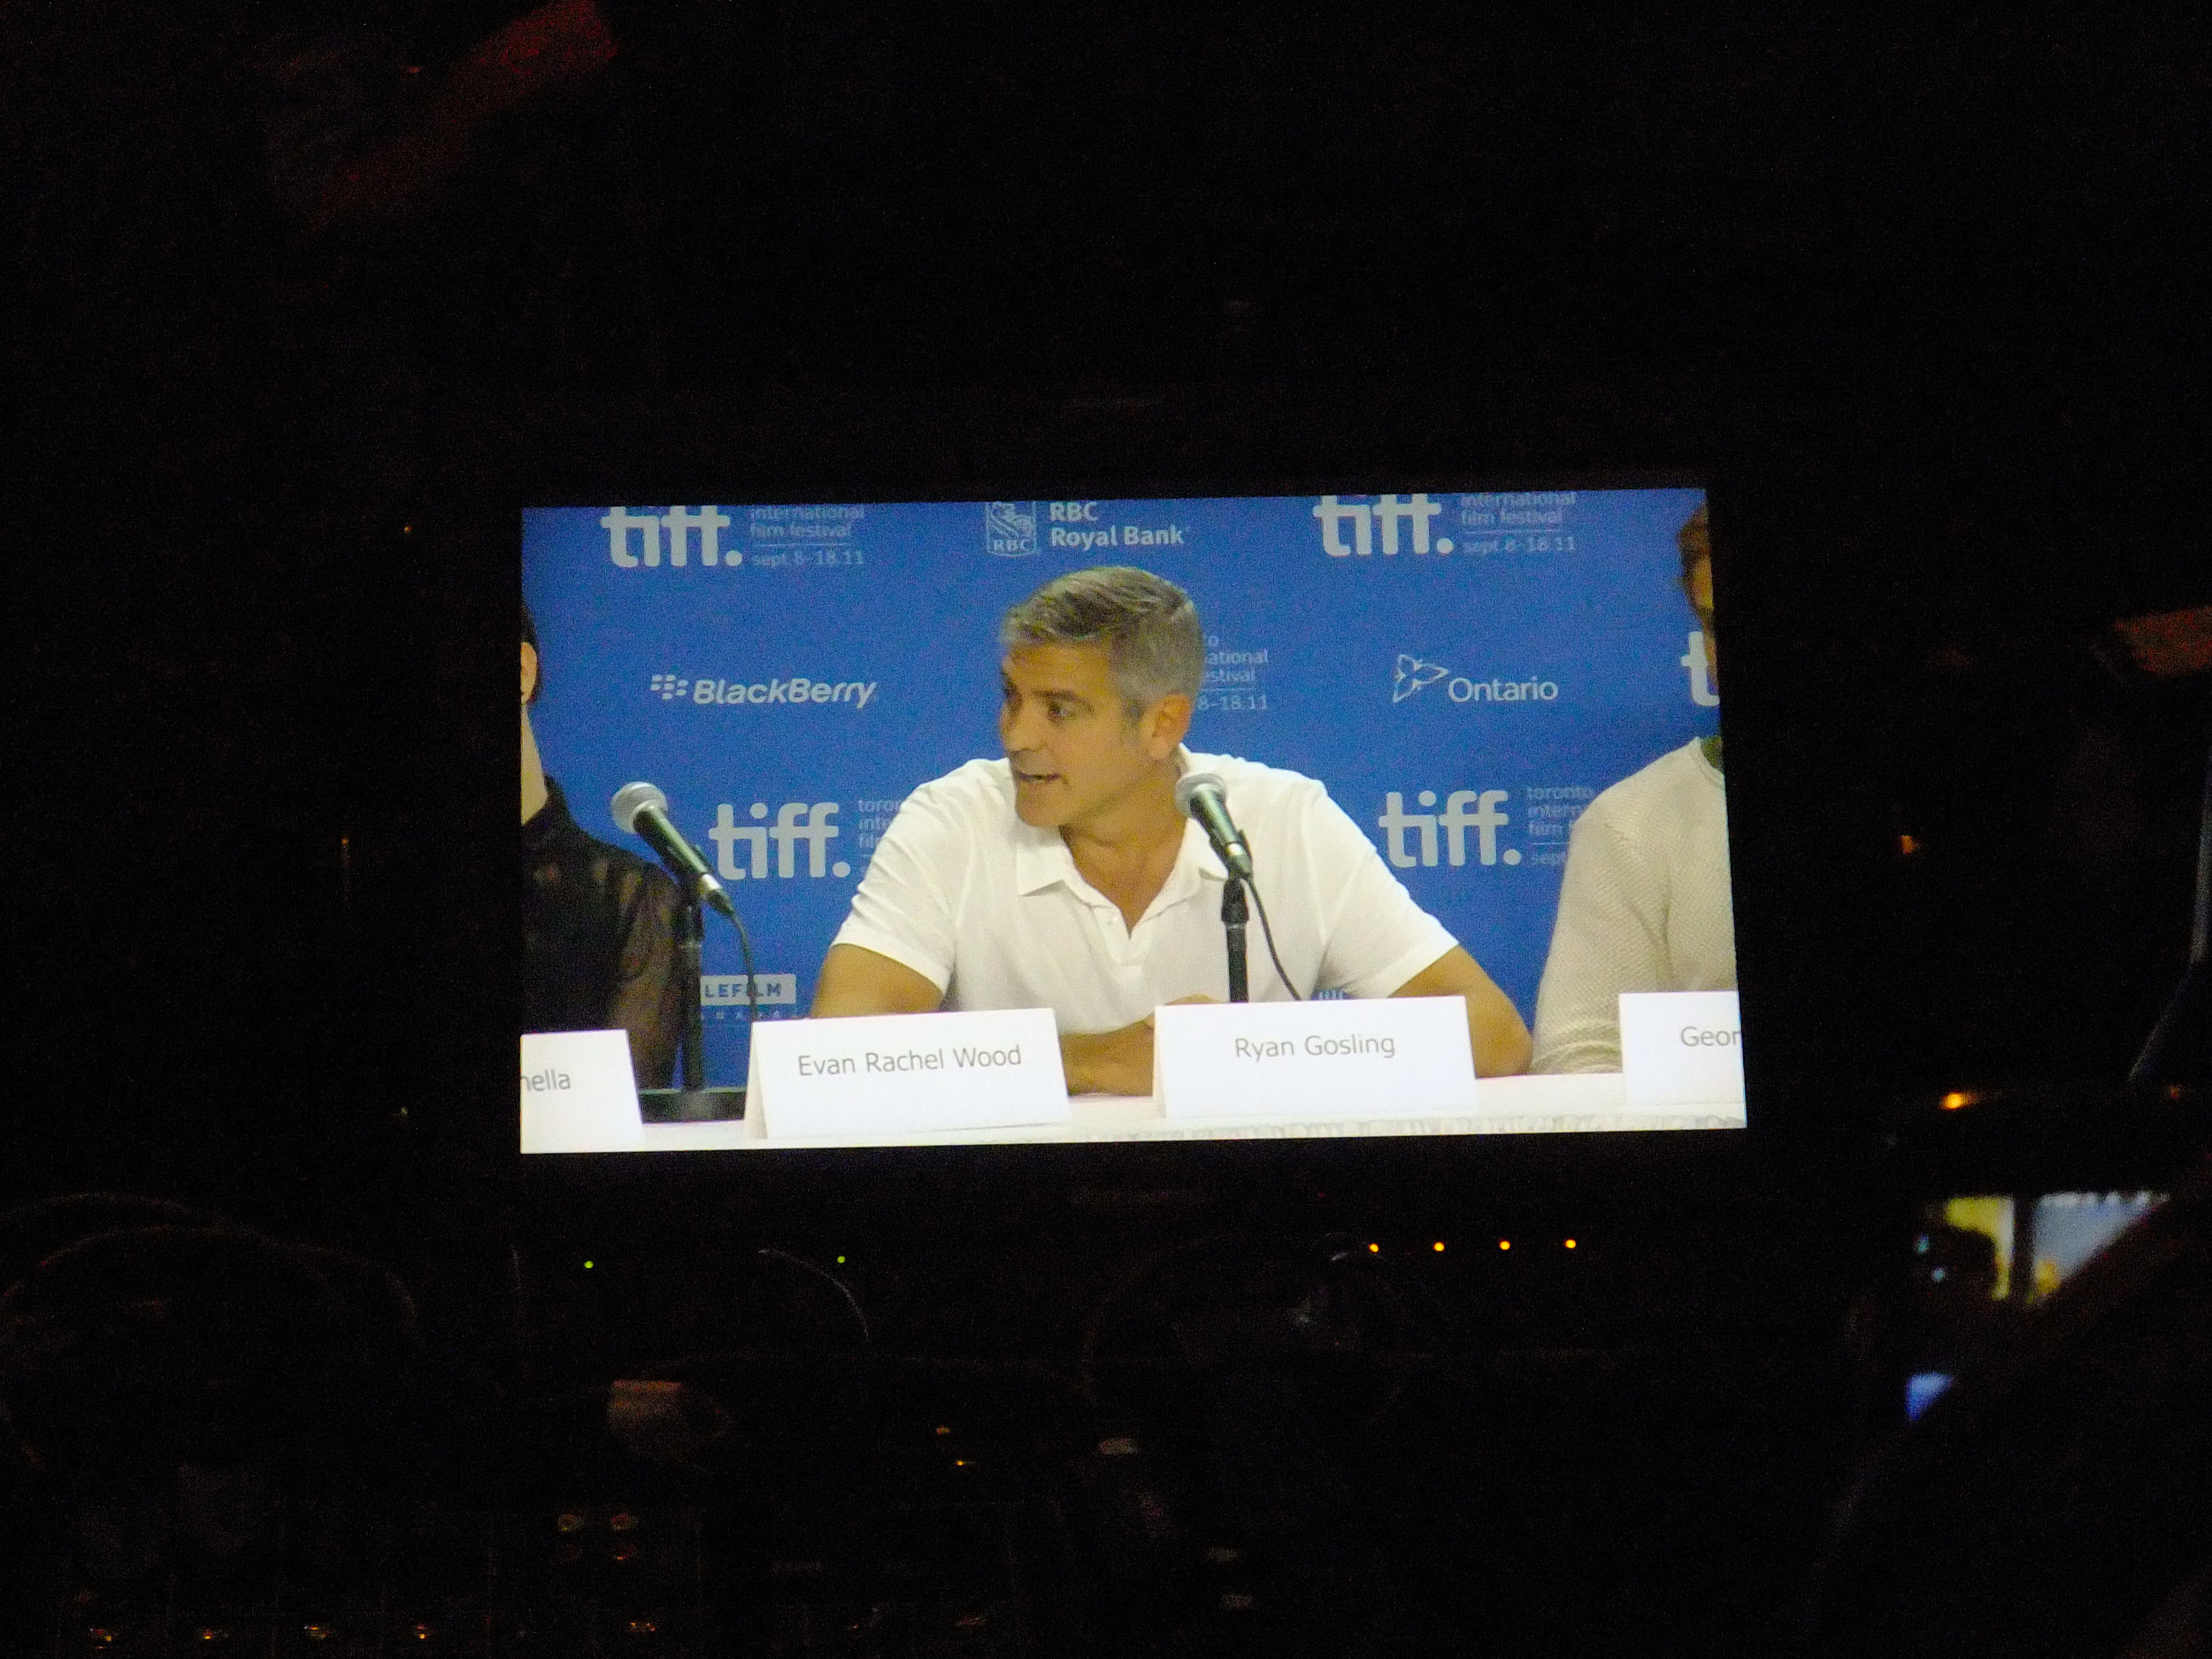 Screen shot of George Clooney at the interview table